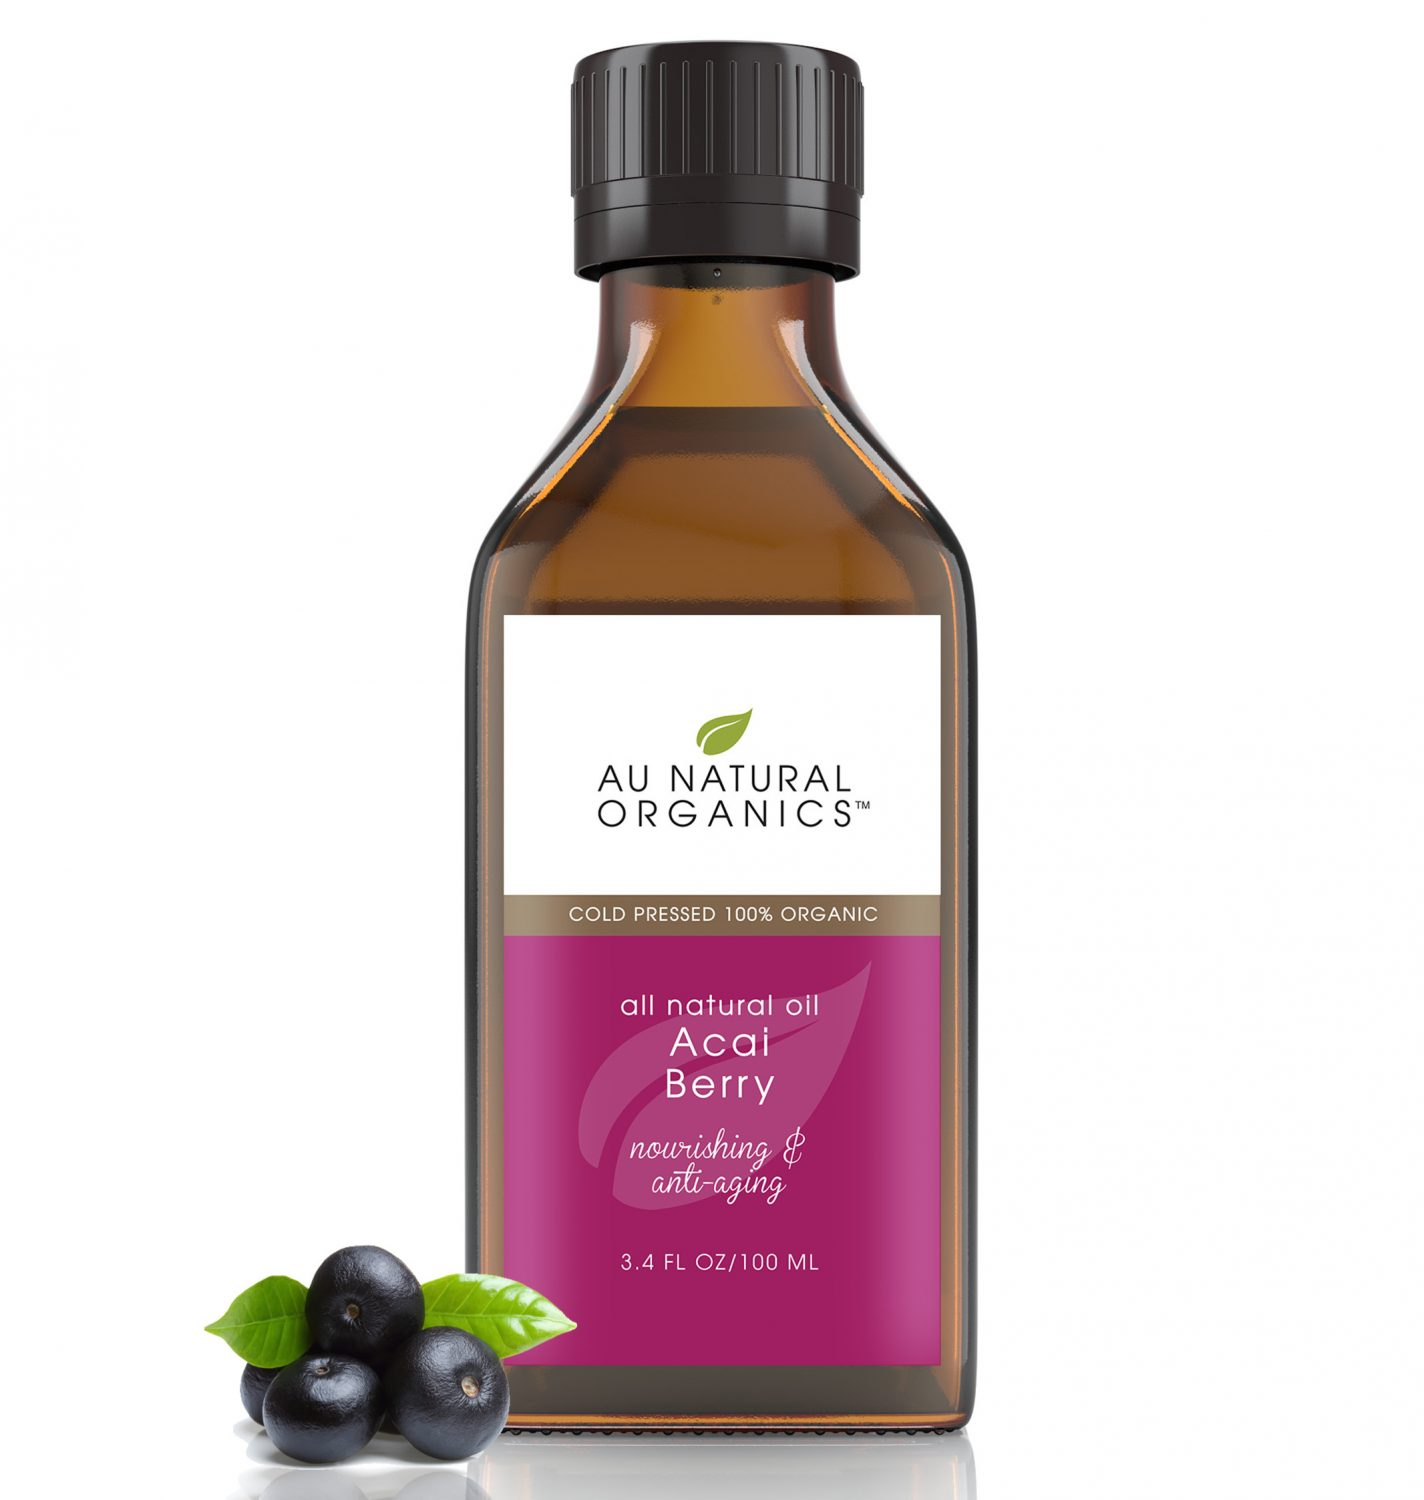 acai berry oil - hair care